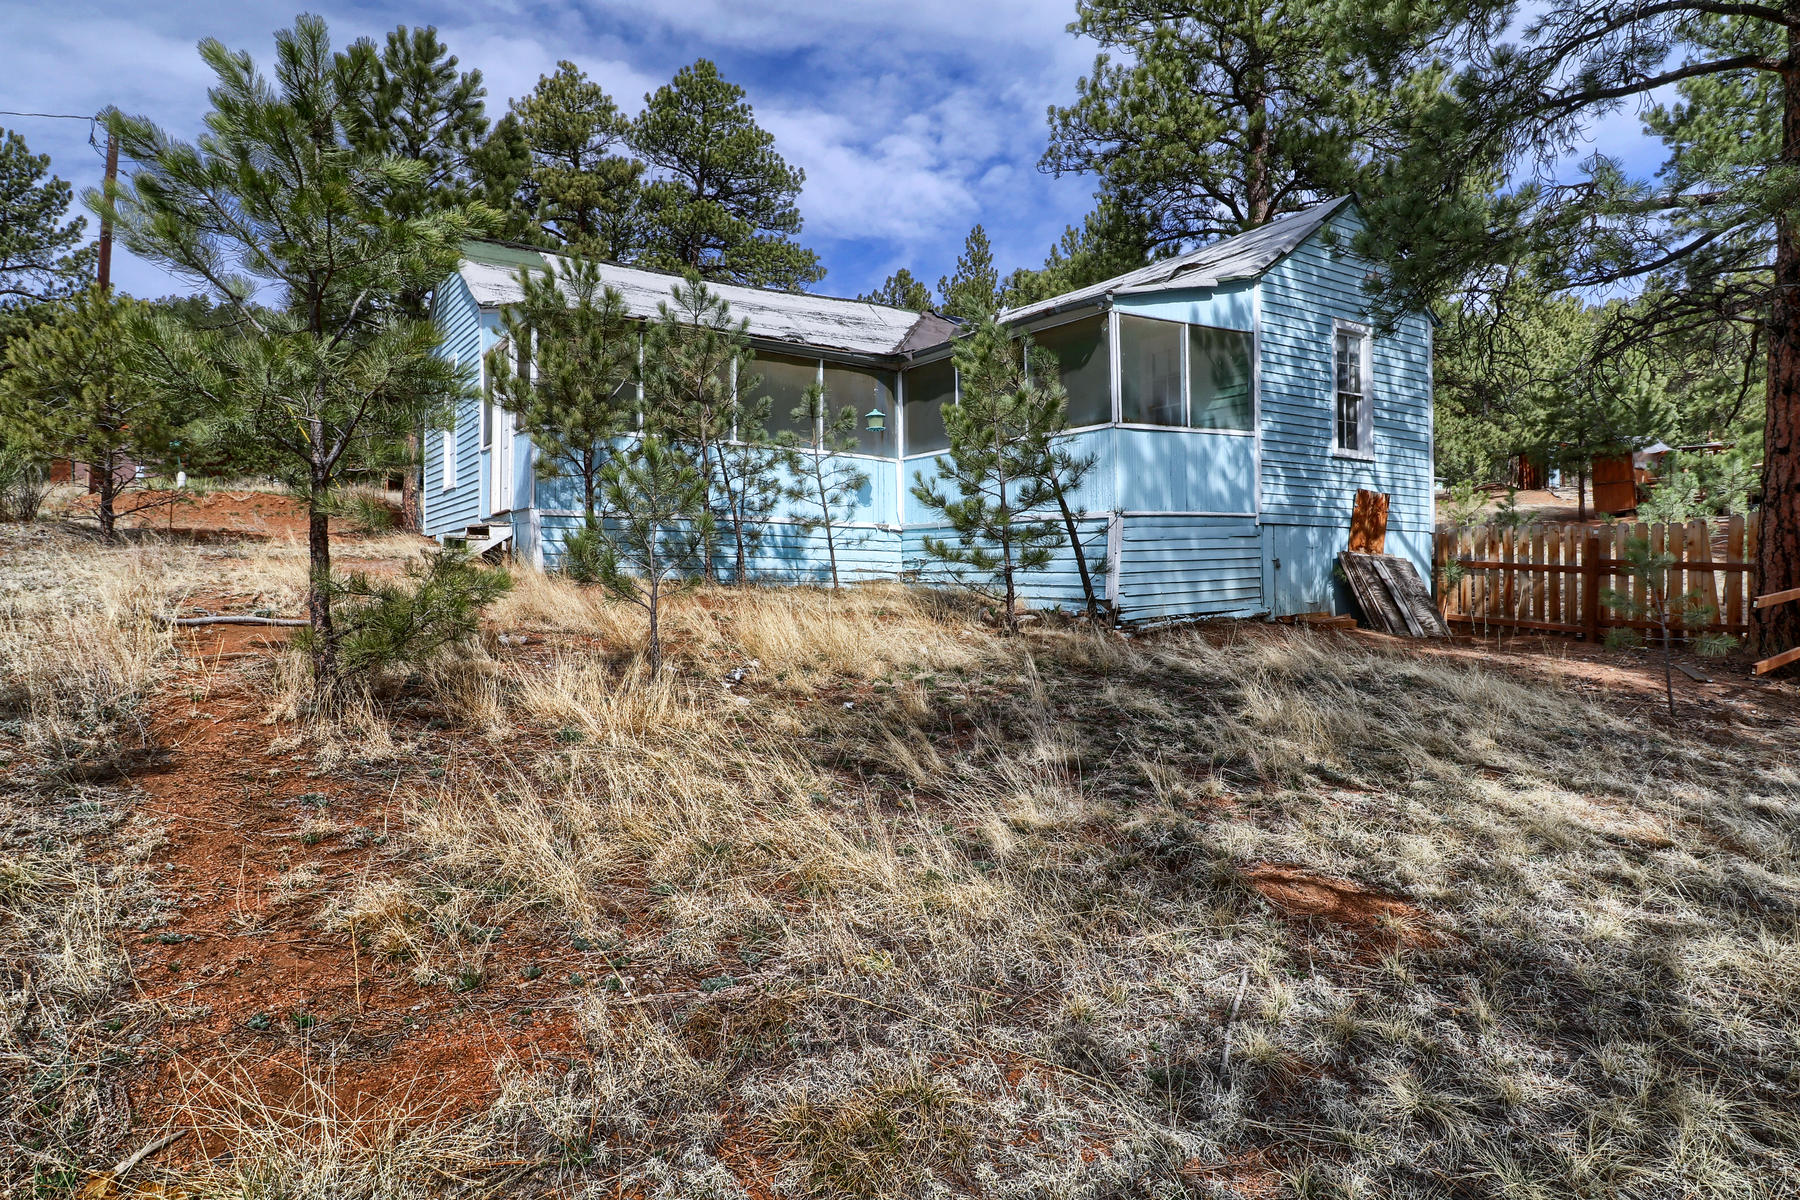 Single Family Home for Active at Adorable Cabin In The Heart Of Historic Pine 28377 Morrison Avenue Pine, Colorado 80470 United States